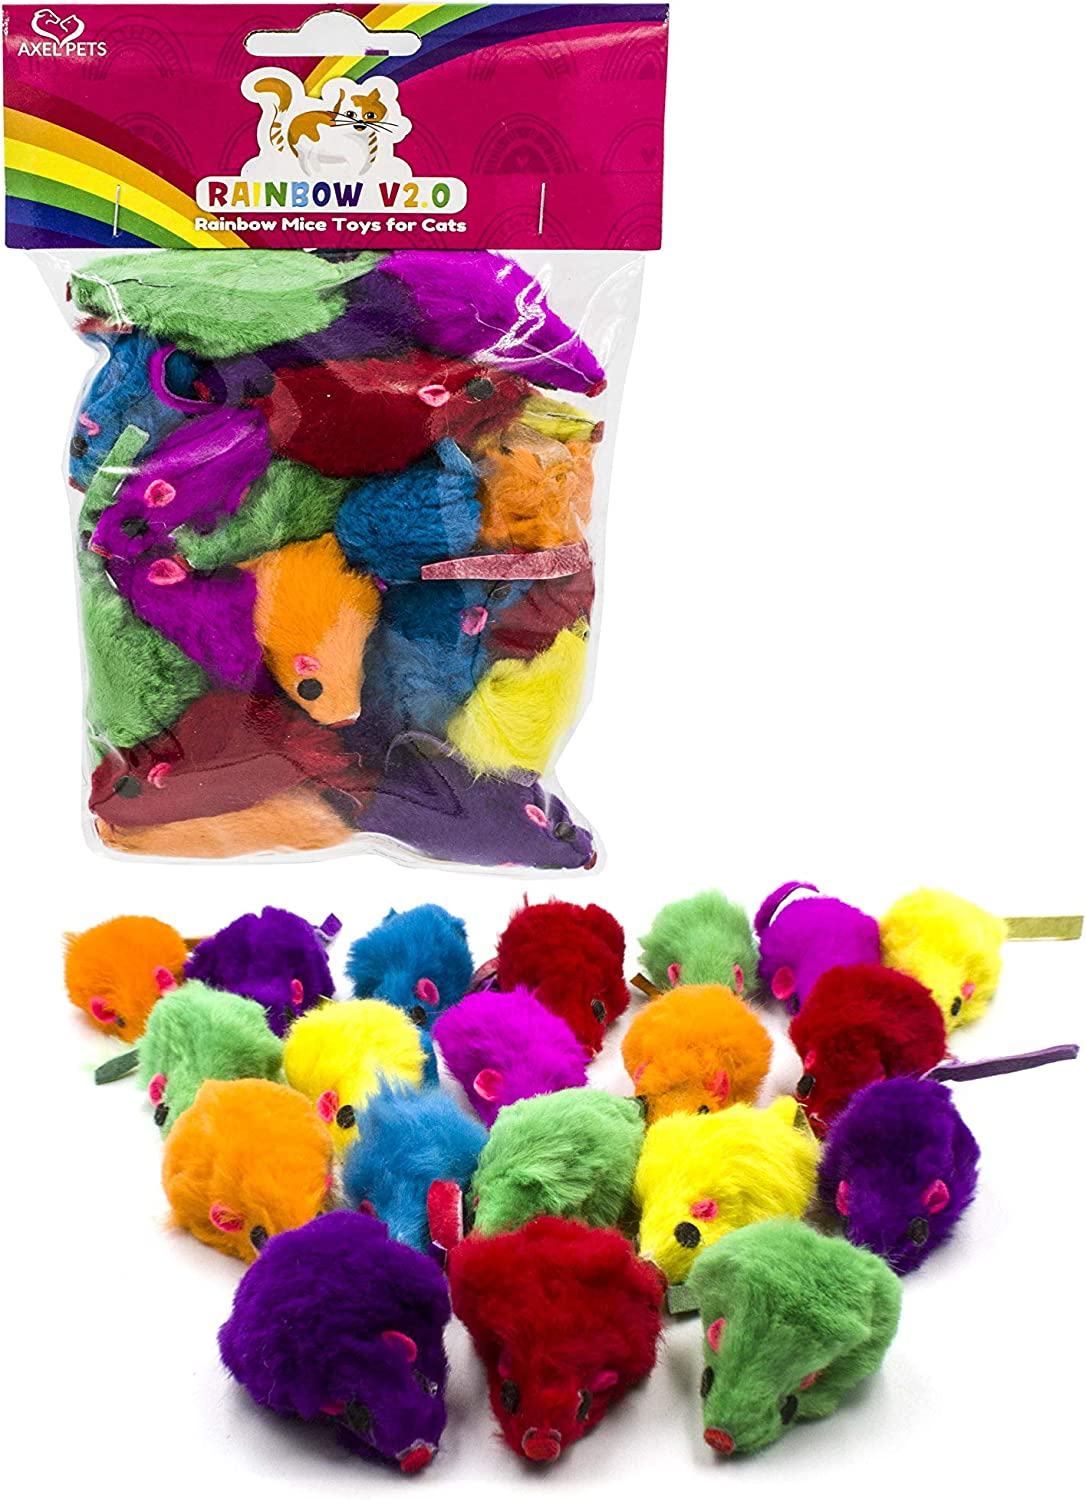 AXEL PETS 20 Spring new work Colorful Rainbow V2.0 and Rattle with S Mice Catnip Limited price